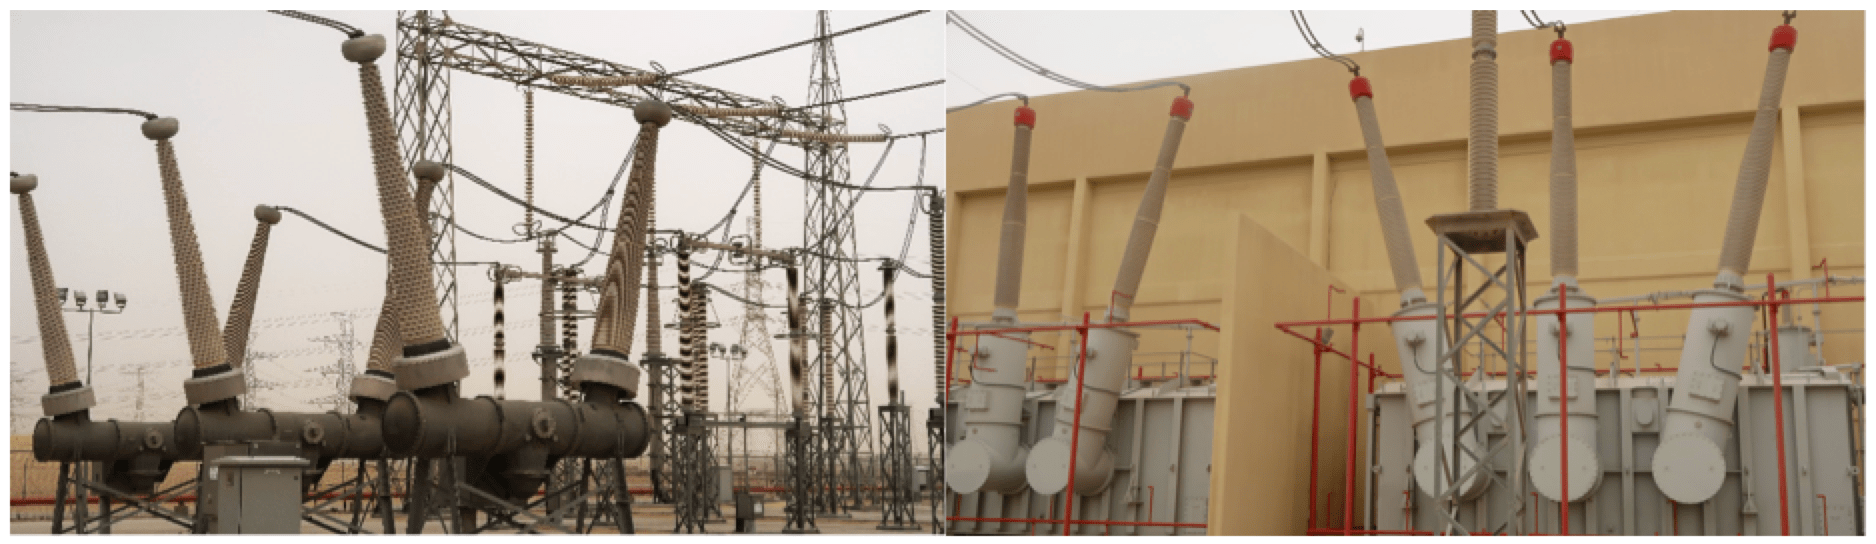 Station high voltage insulator coating with RTV at Al Fadhili back-to-back converter station. high voltage insulator coating High Voltage Insulator Coatings: State-of-the-Art & Future Development Station insulators coated with RTV at Al Fadhili back to back converter station